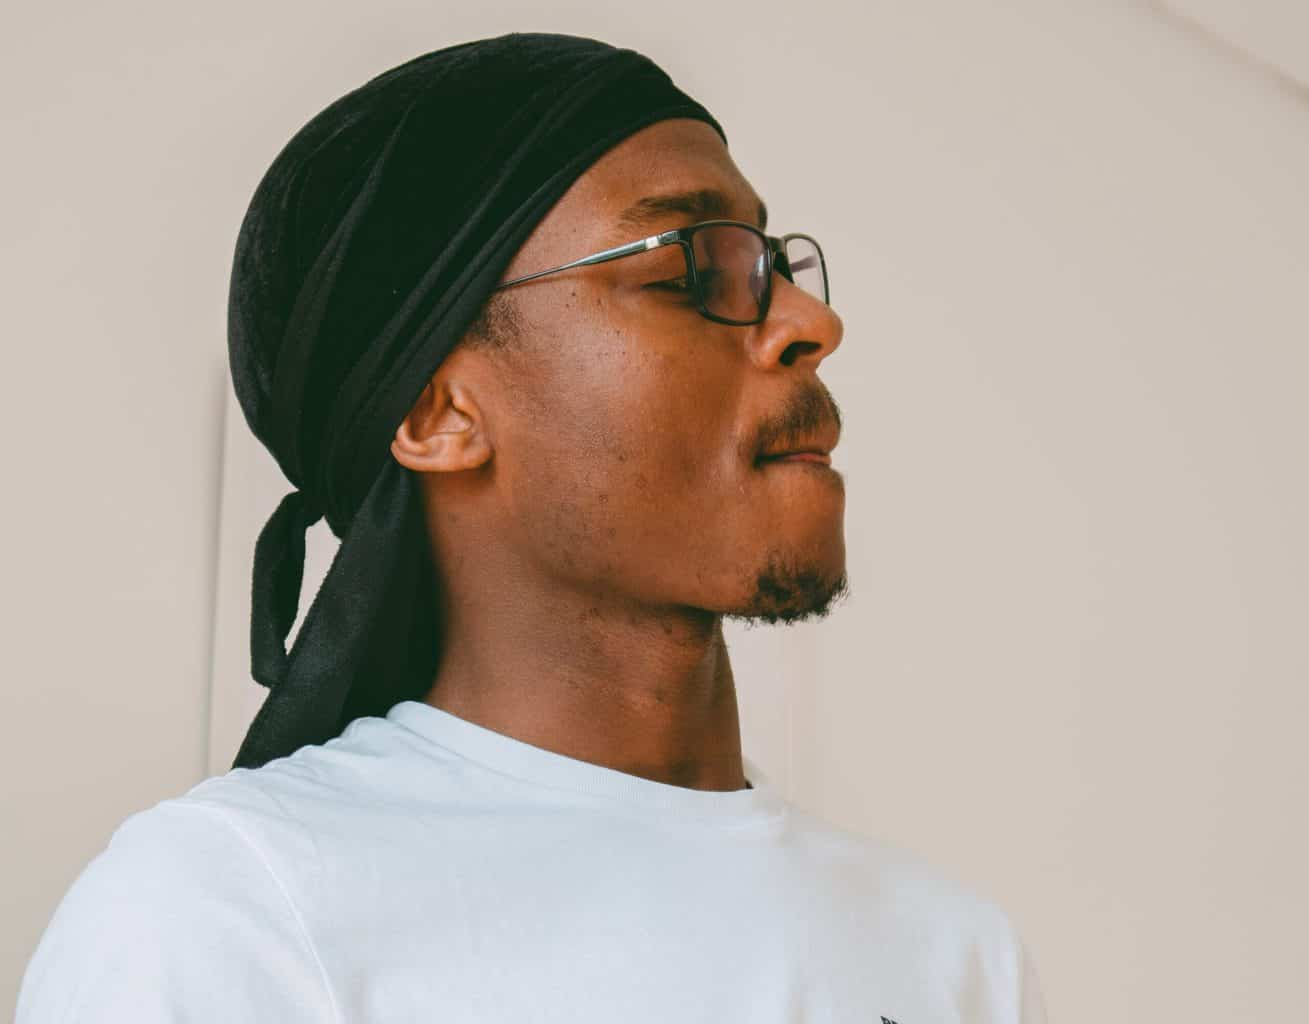 A man with glasses wearing a black durag